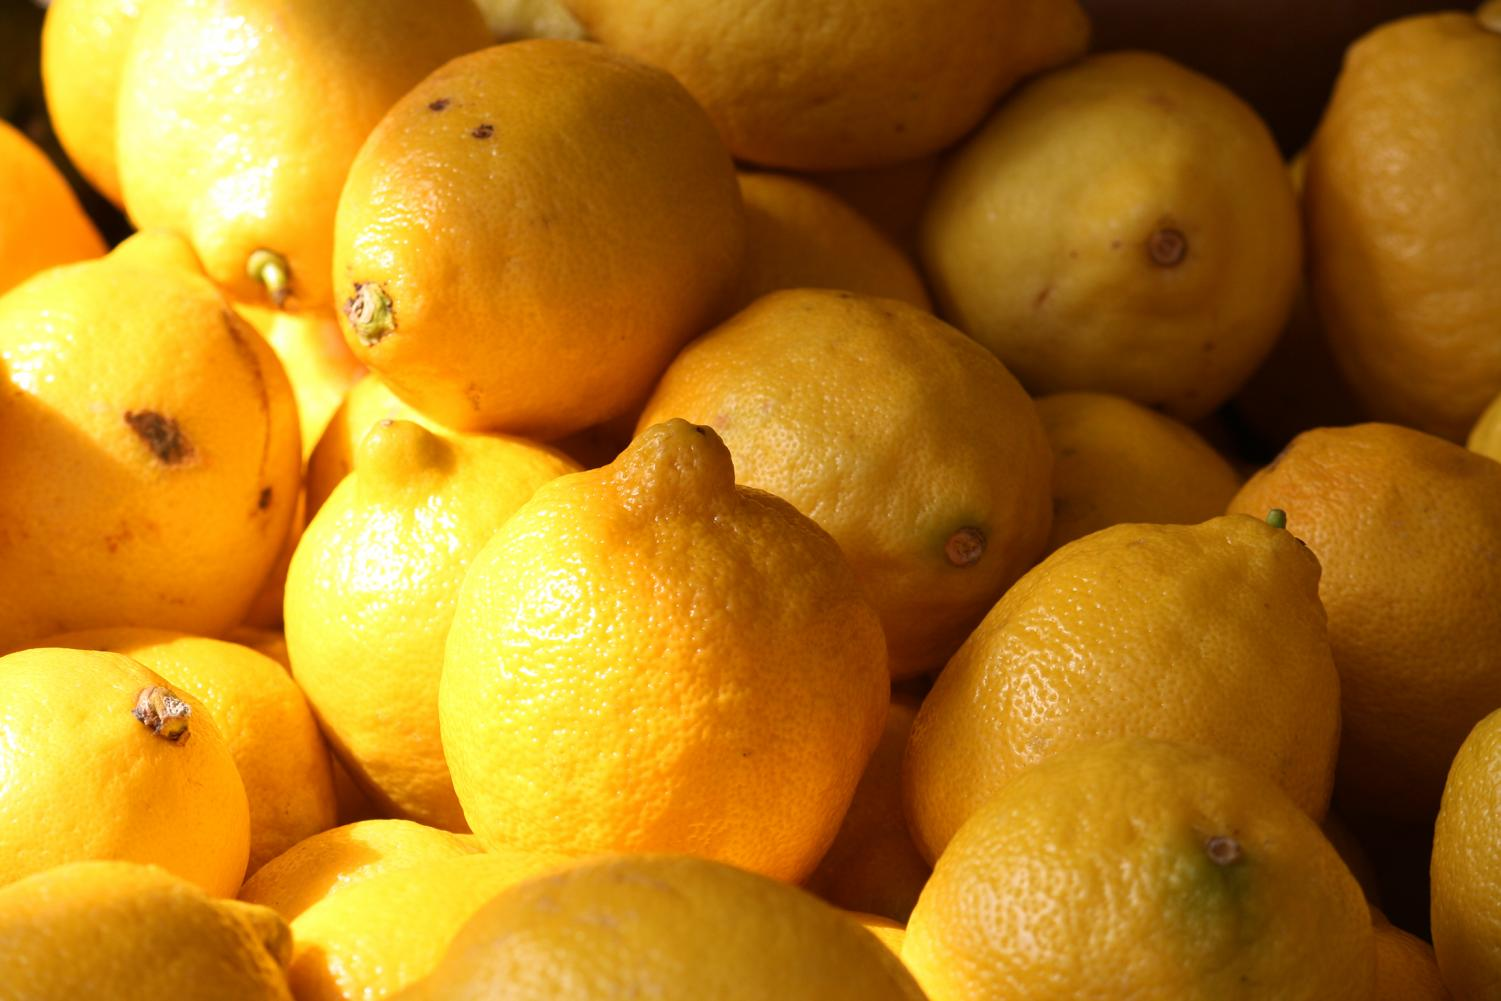 Lemon juice can be used to enhance flavor and  add nutrients to food and water.